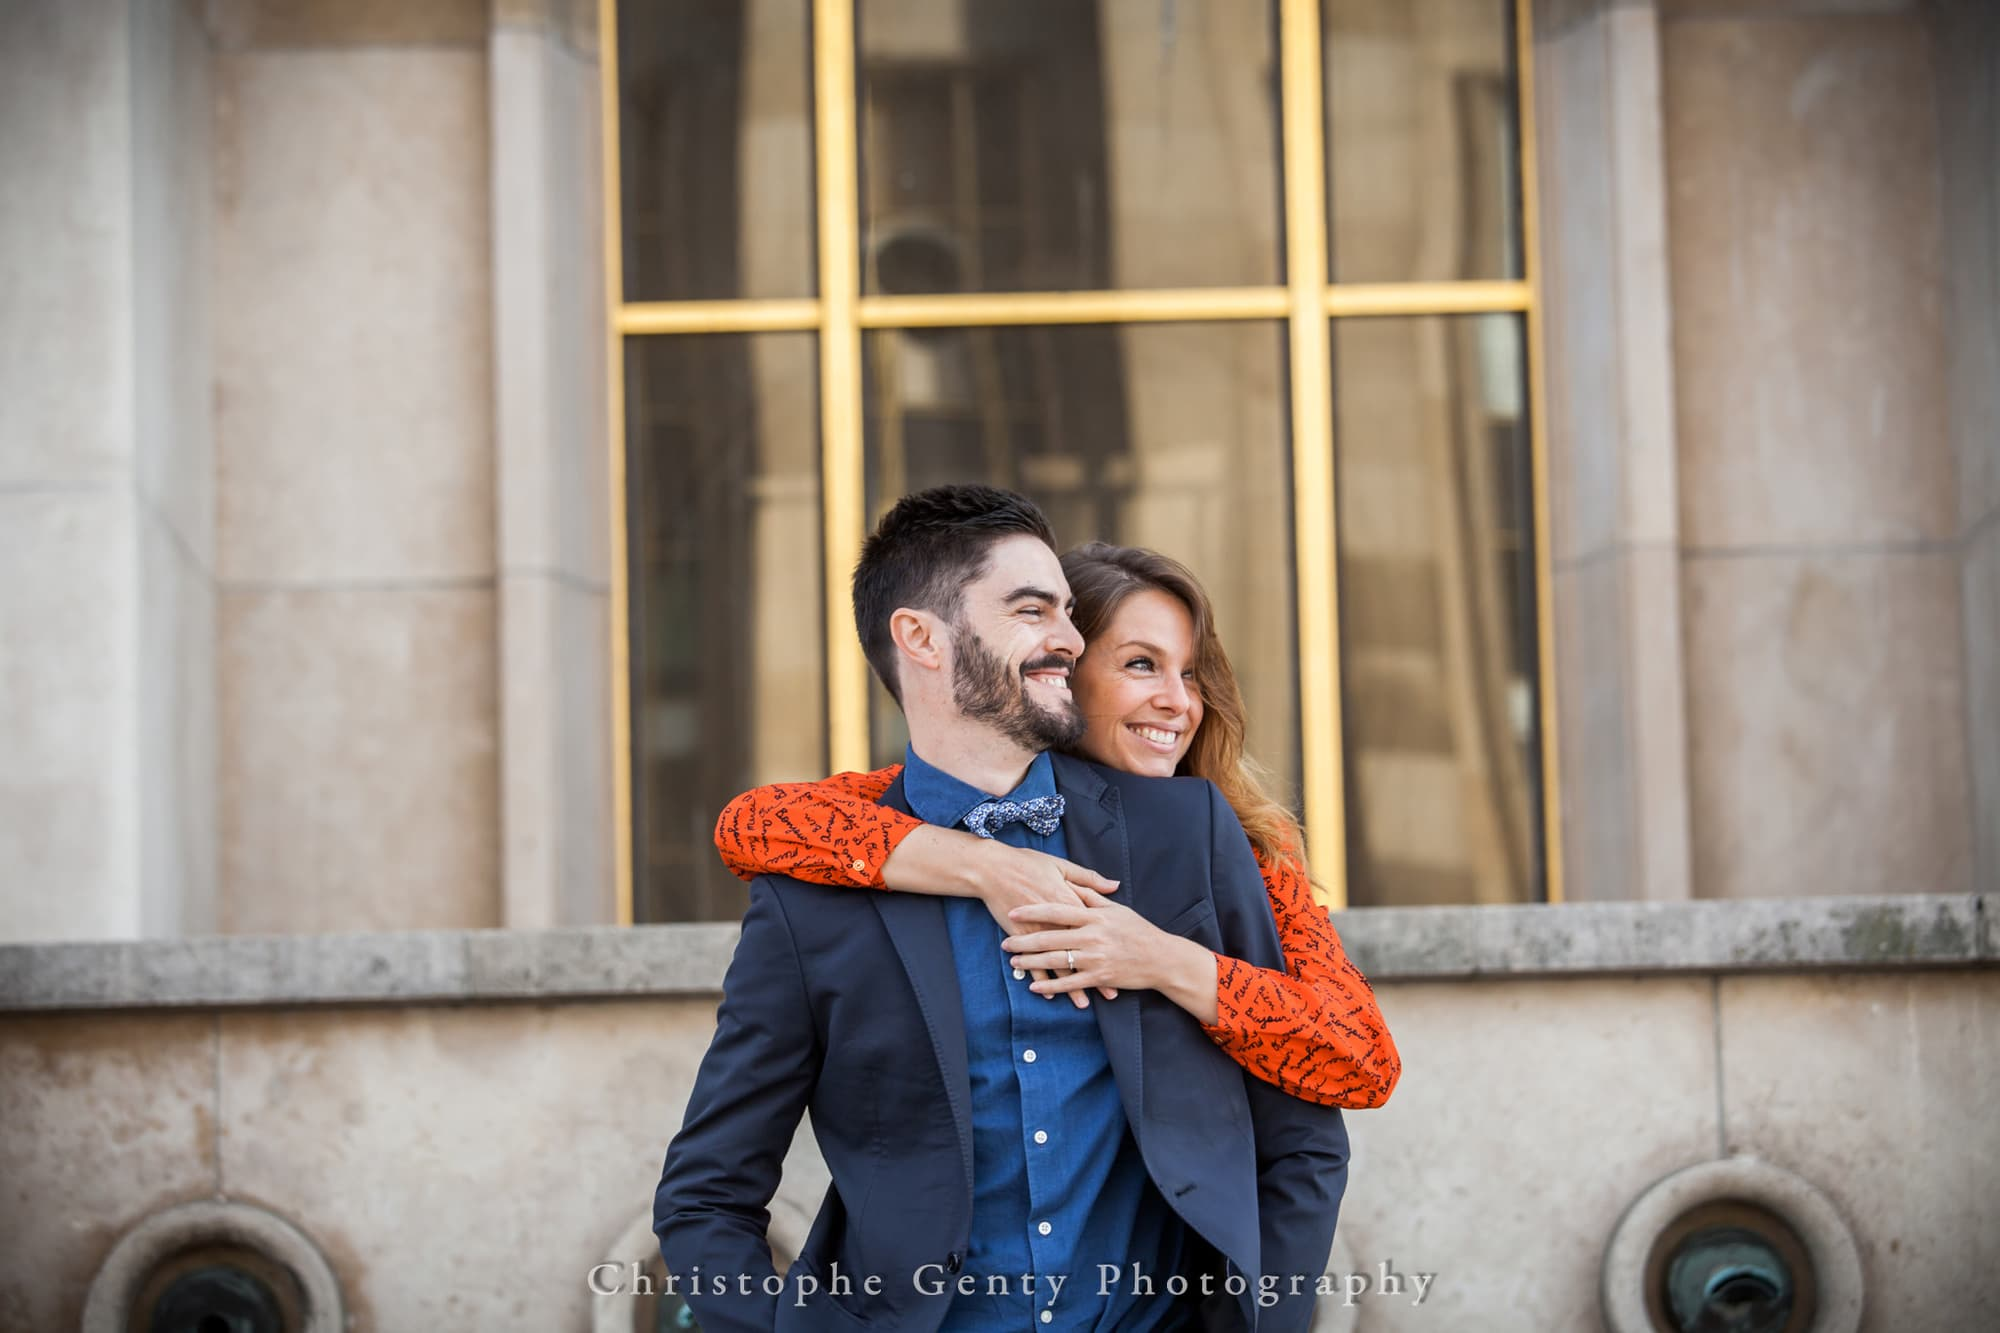 Paris, France Marriage Proposal Photography - at the Trocadero